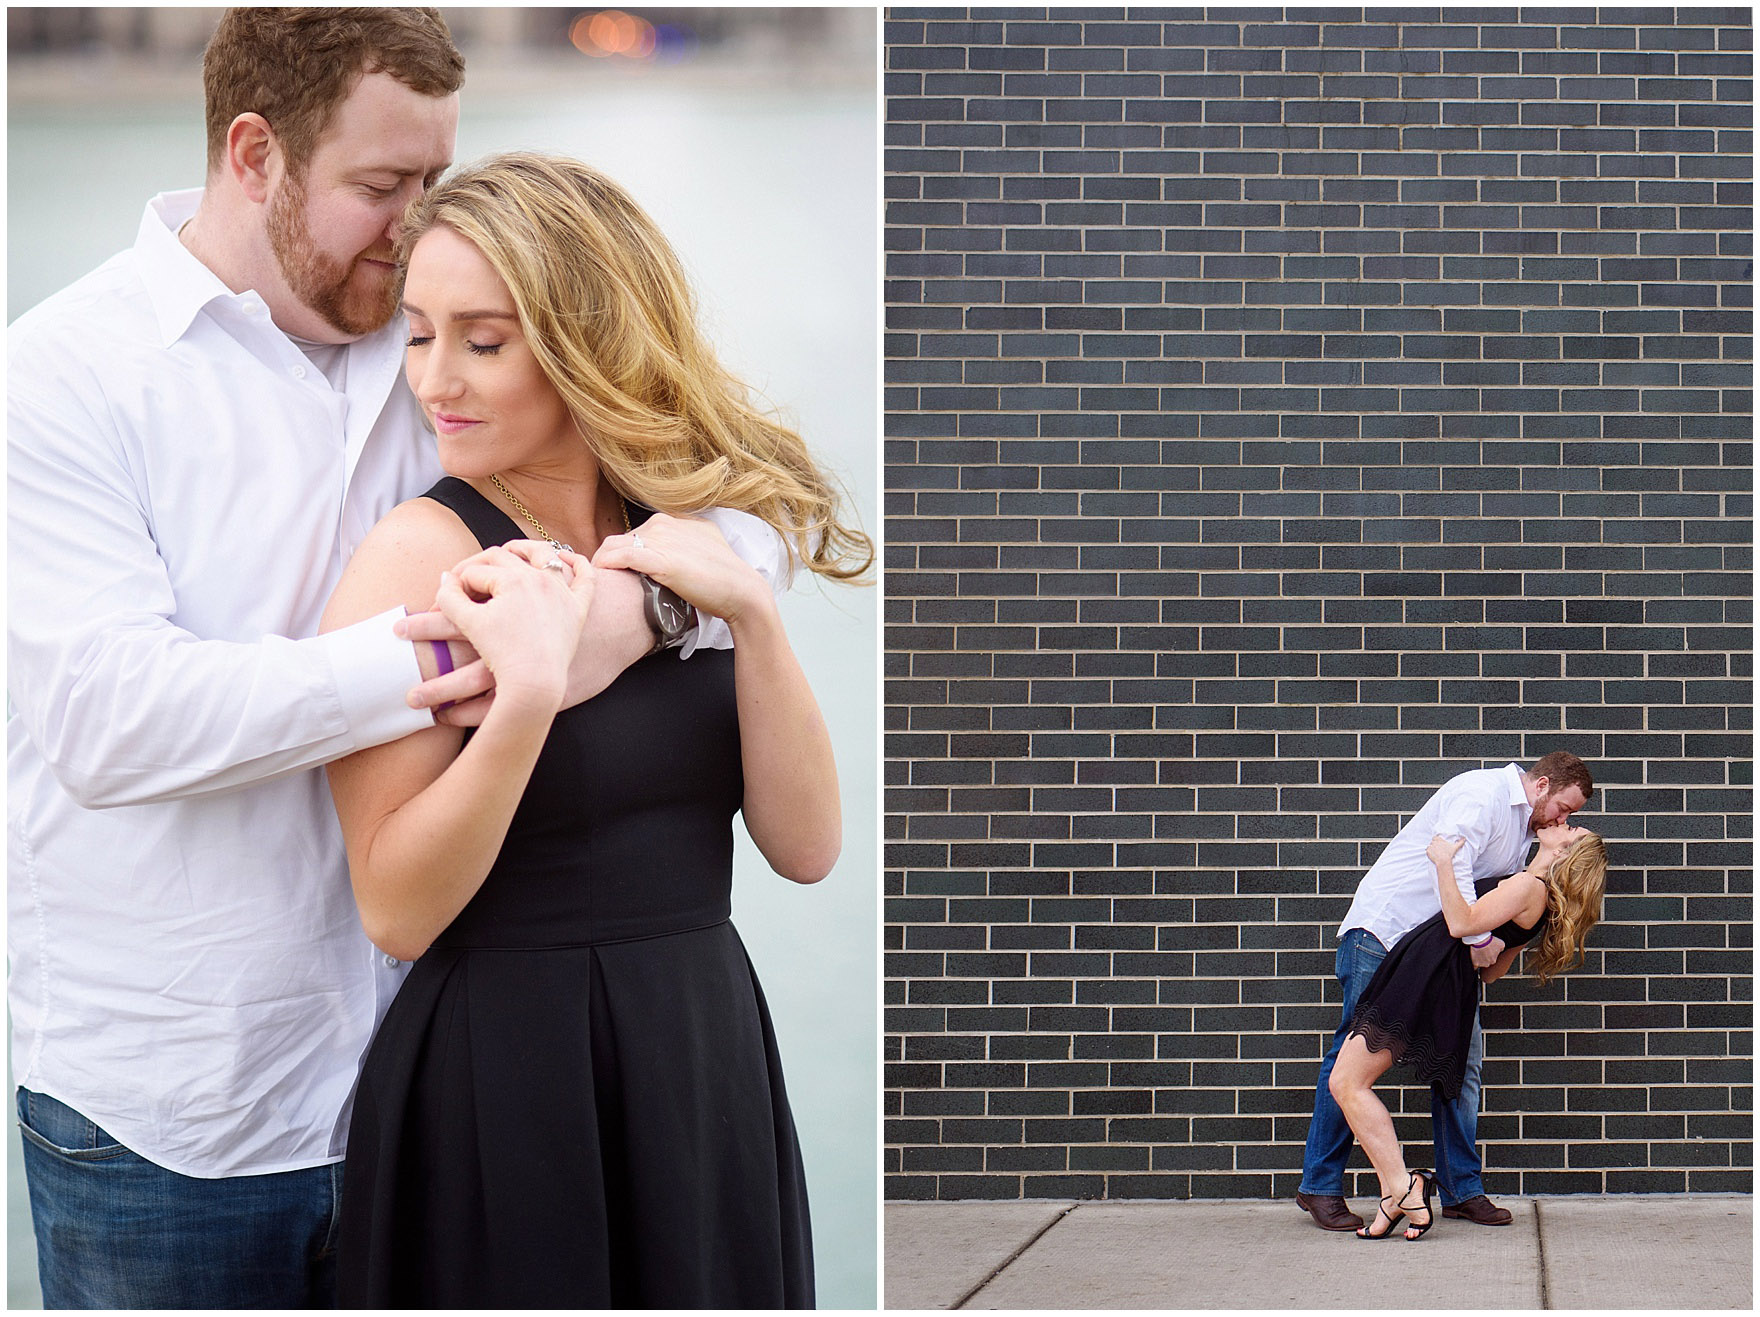 A bride and groom-to-be embrace during a downtown Chicago city engagement photography session.